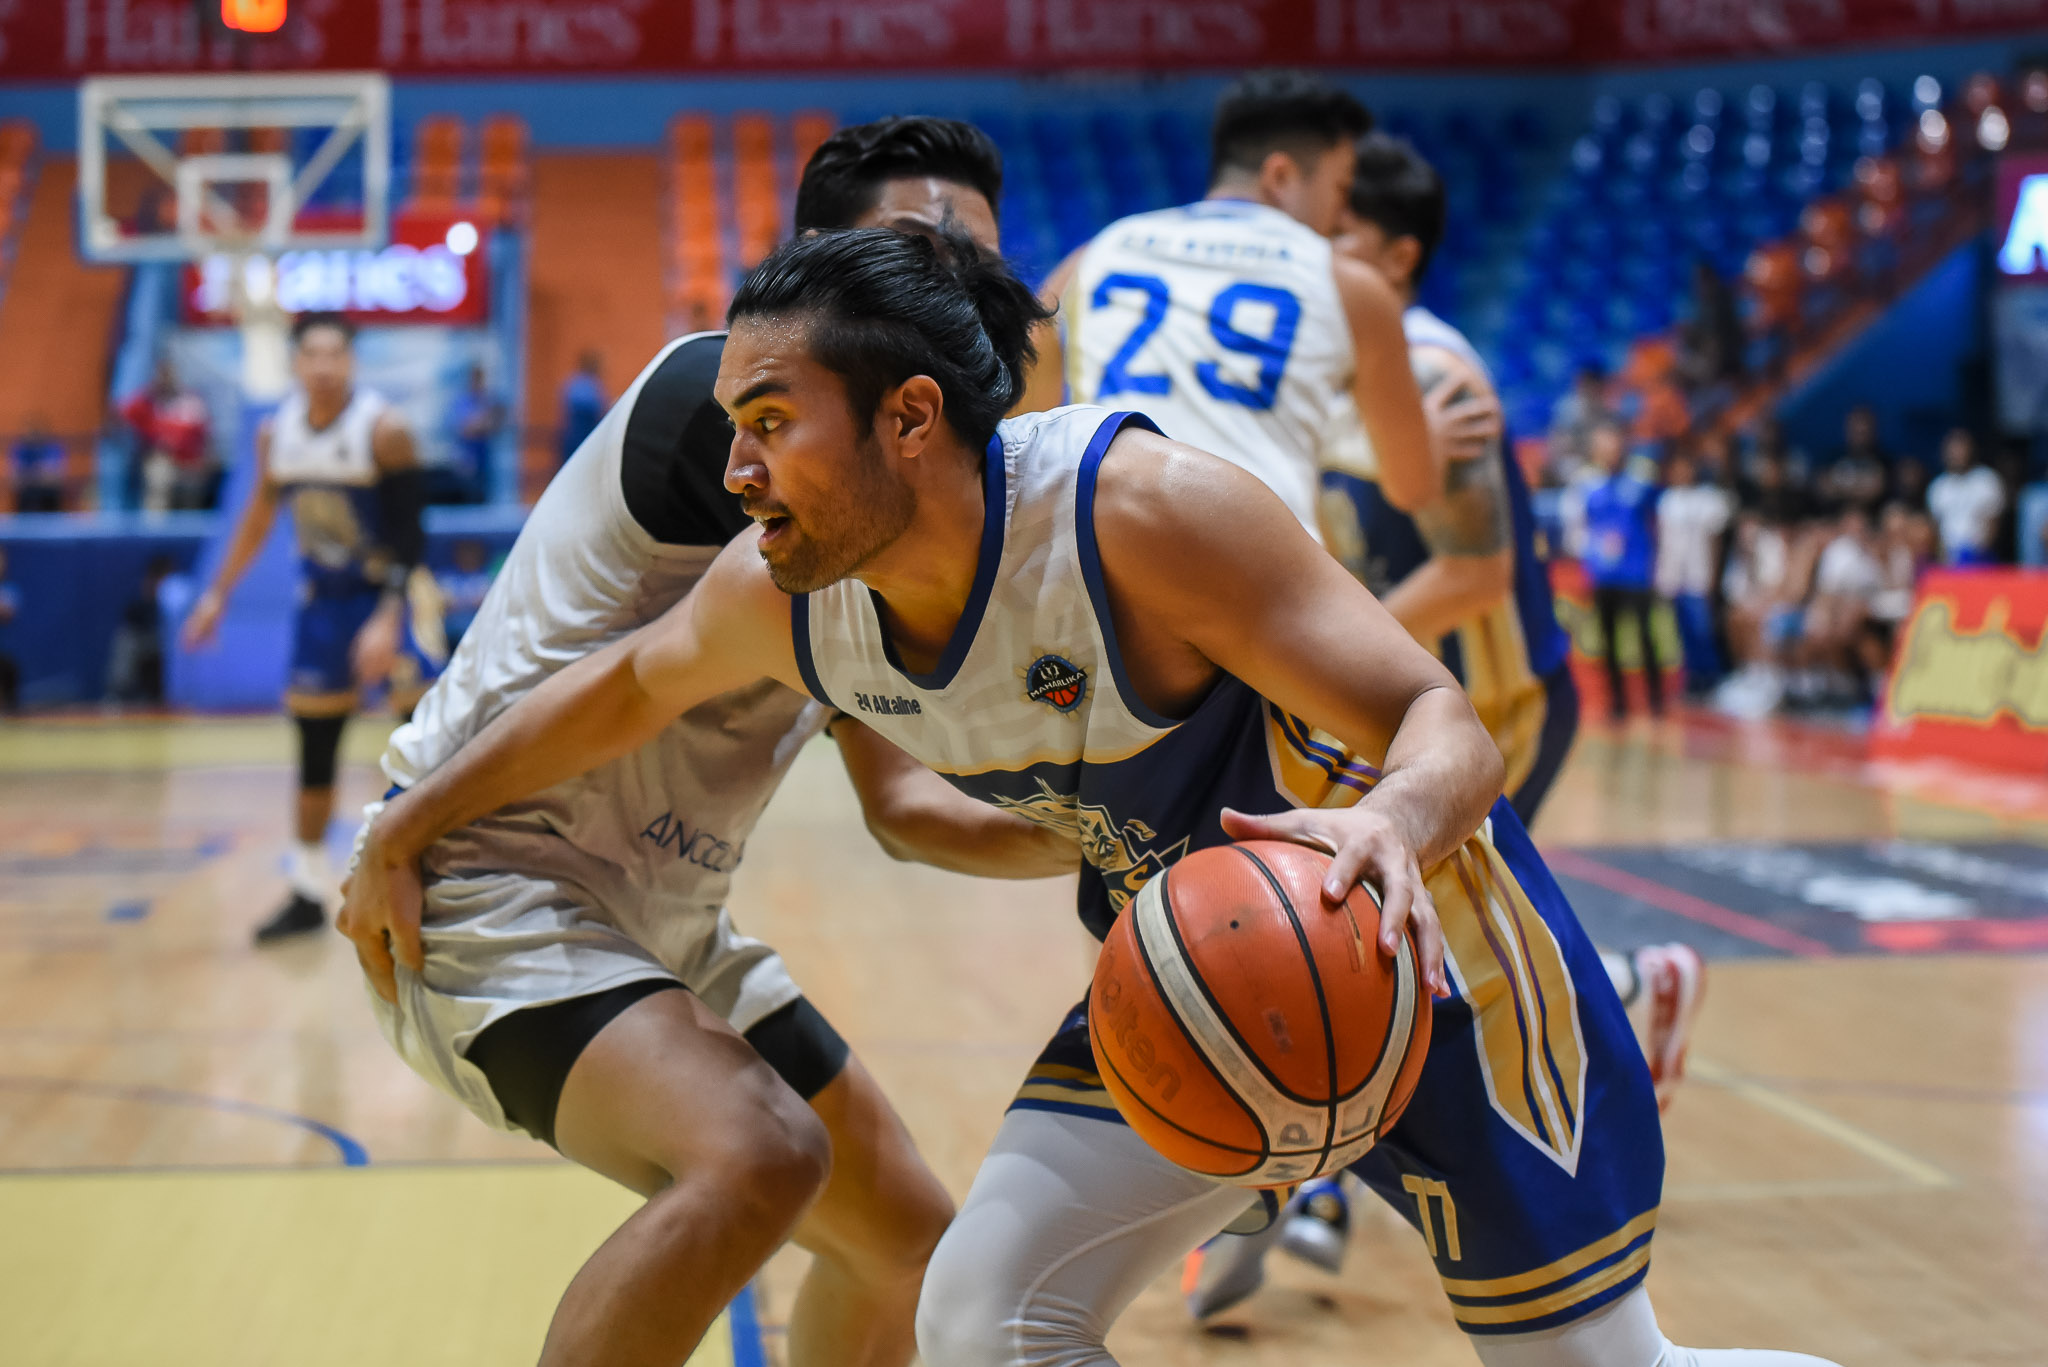 Tiebreaker Times Gab Banal steers Bacoor rout of Muntinlupa as MPBL King of the North race heats up Basketball MPBL News  RJ Ramirez Oping Sumalinog Muntinlupa Cagers Jamil Ortuoste Gab Banal Dave Moralde Chris Gavina Bacoor Strikers 2019-20 MPBL Lakan Cup